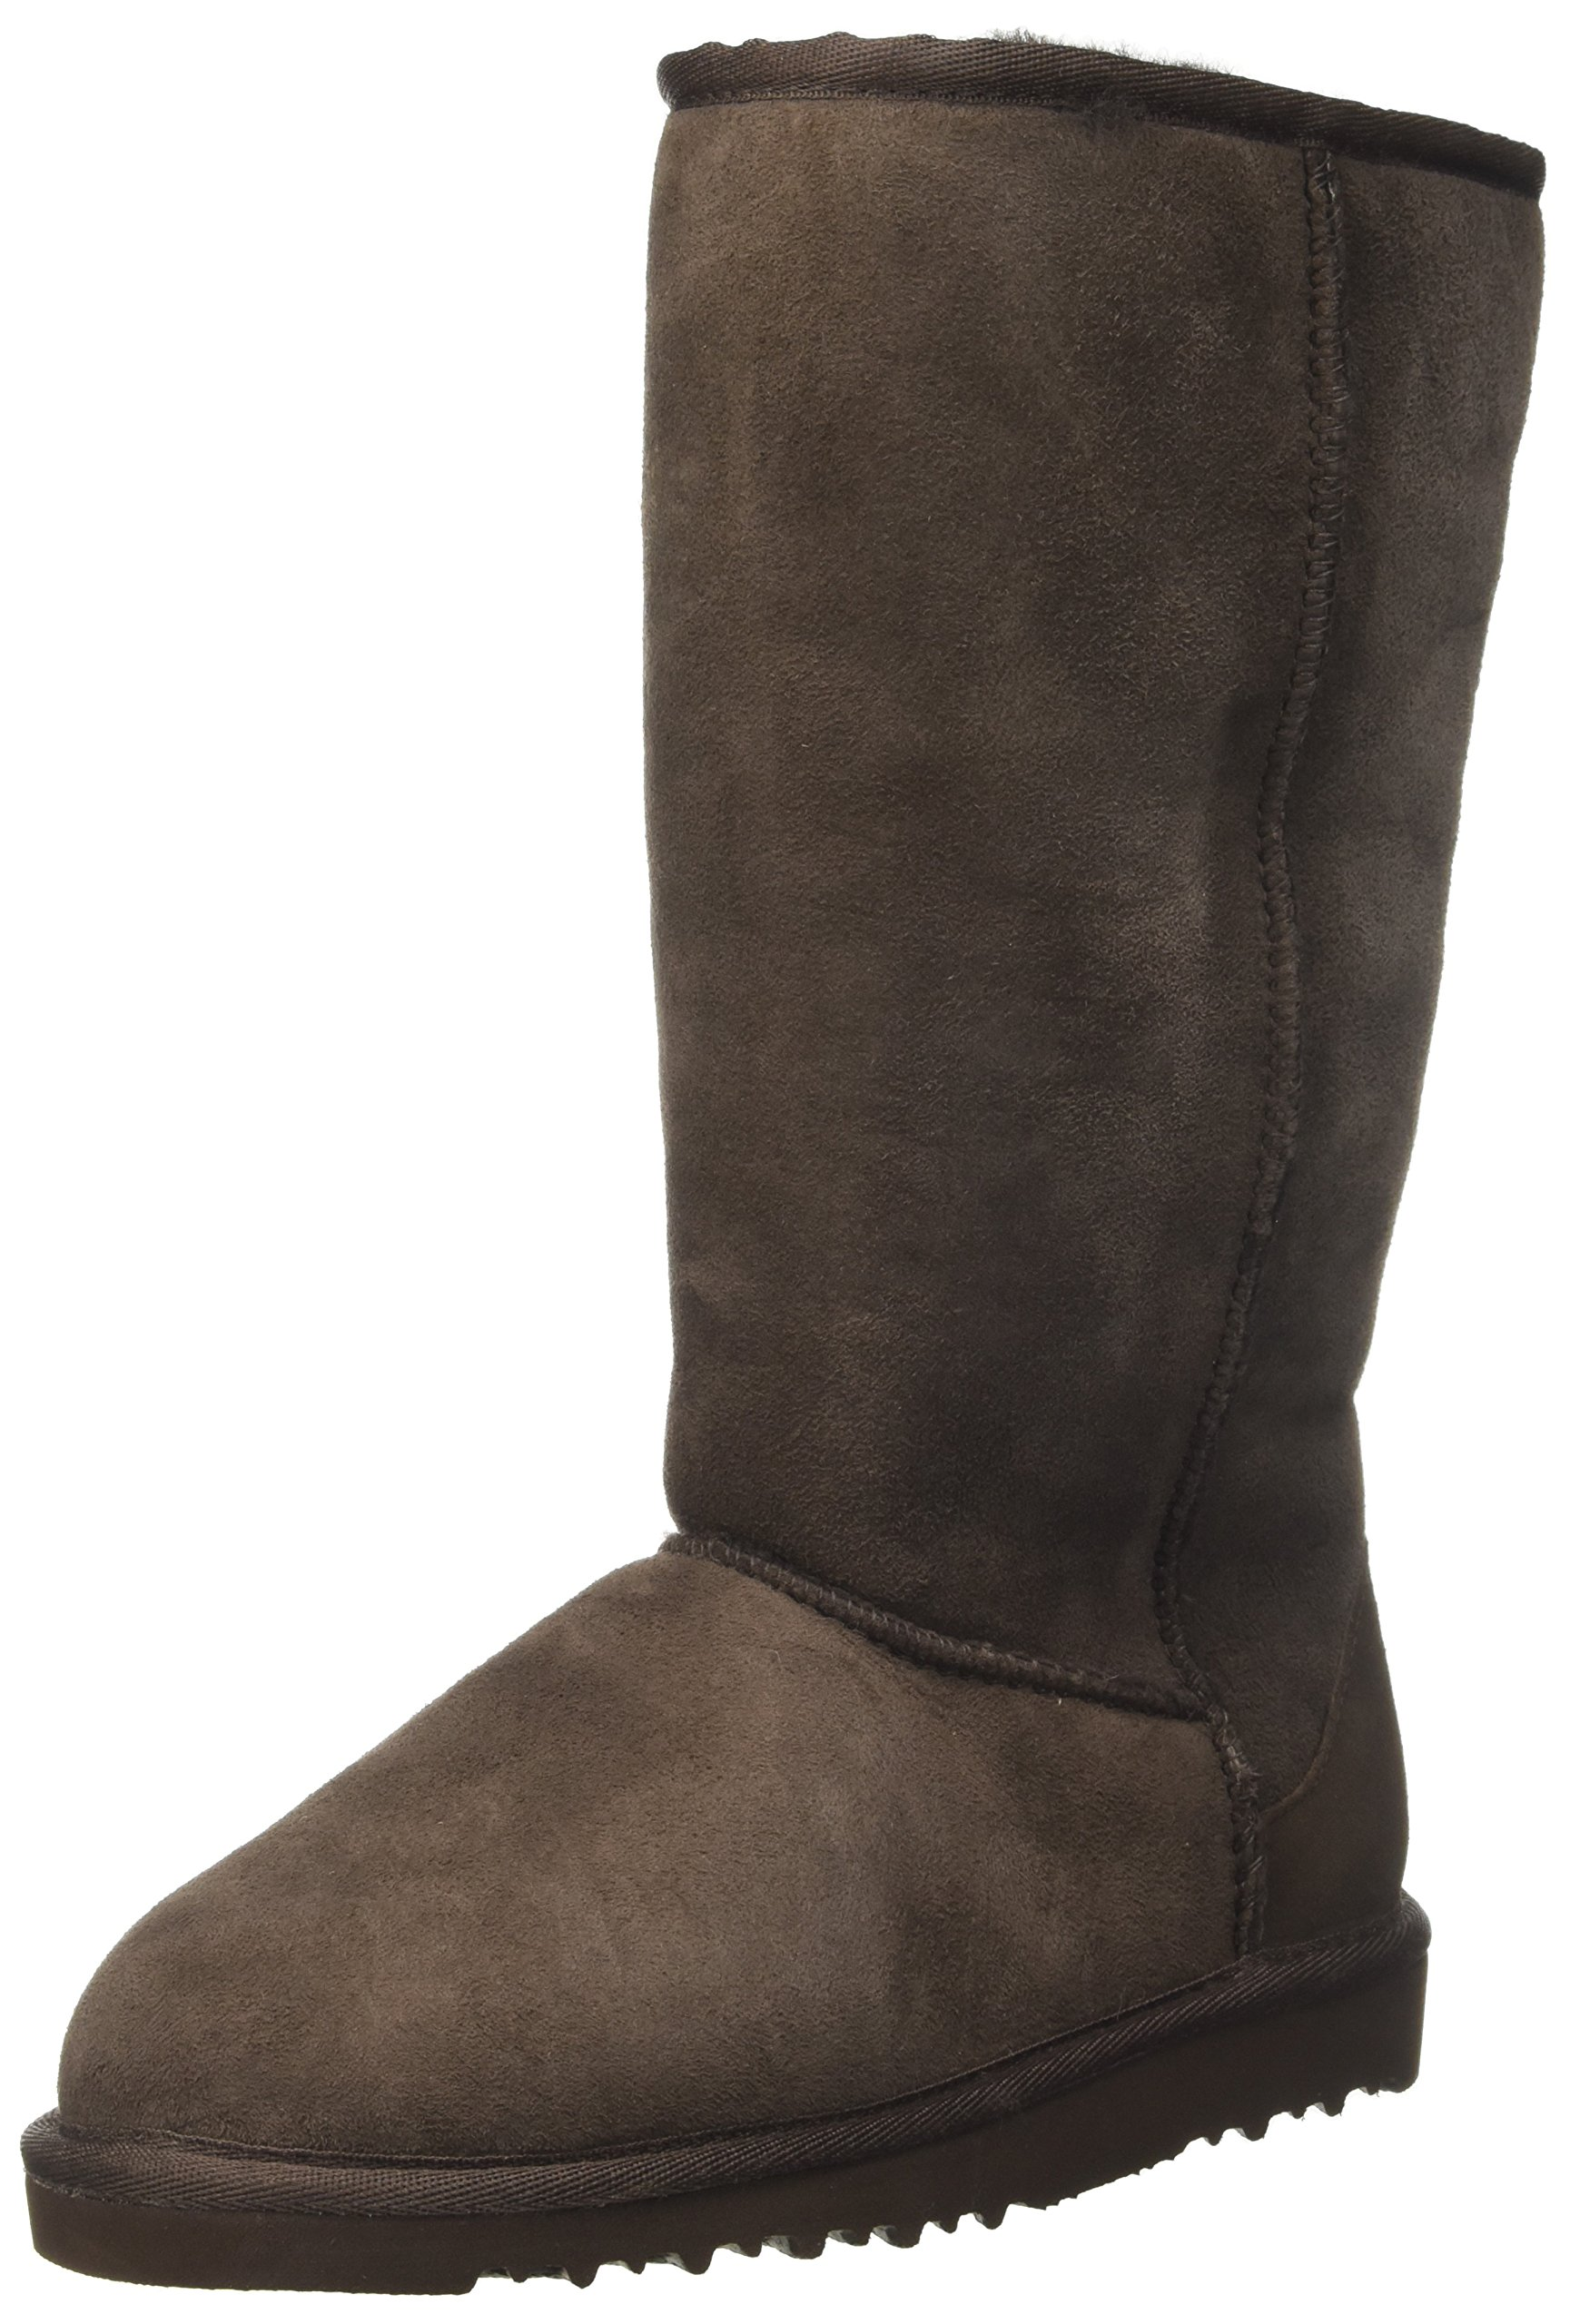 UGG Australia Kids Classic Tall Boots - Chocolate Size 4 by UGG